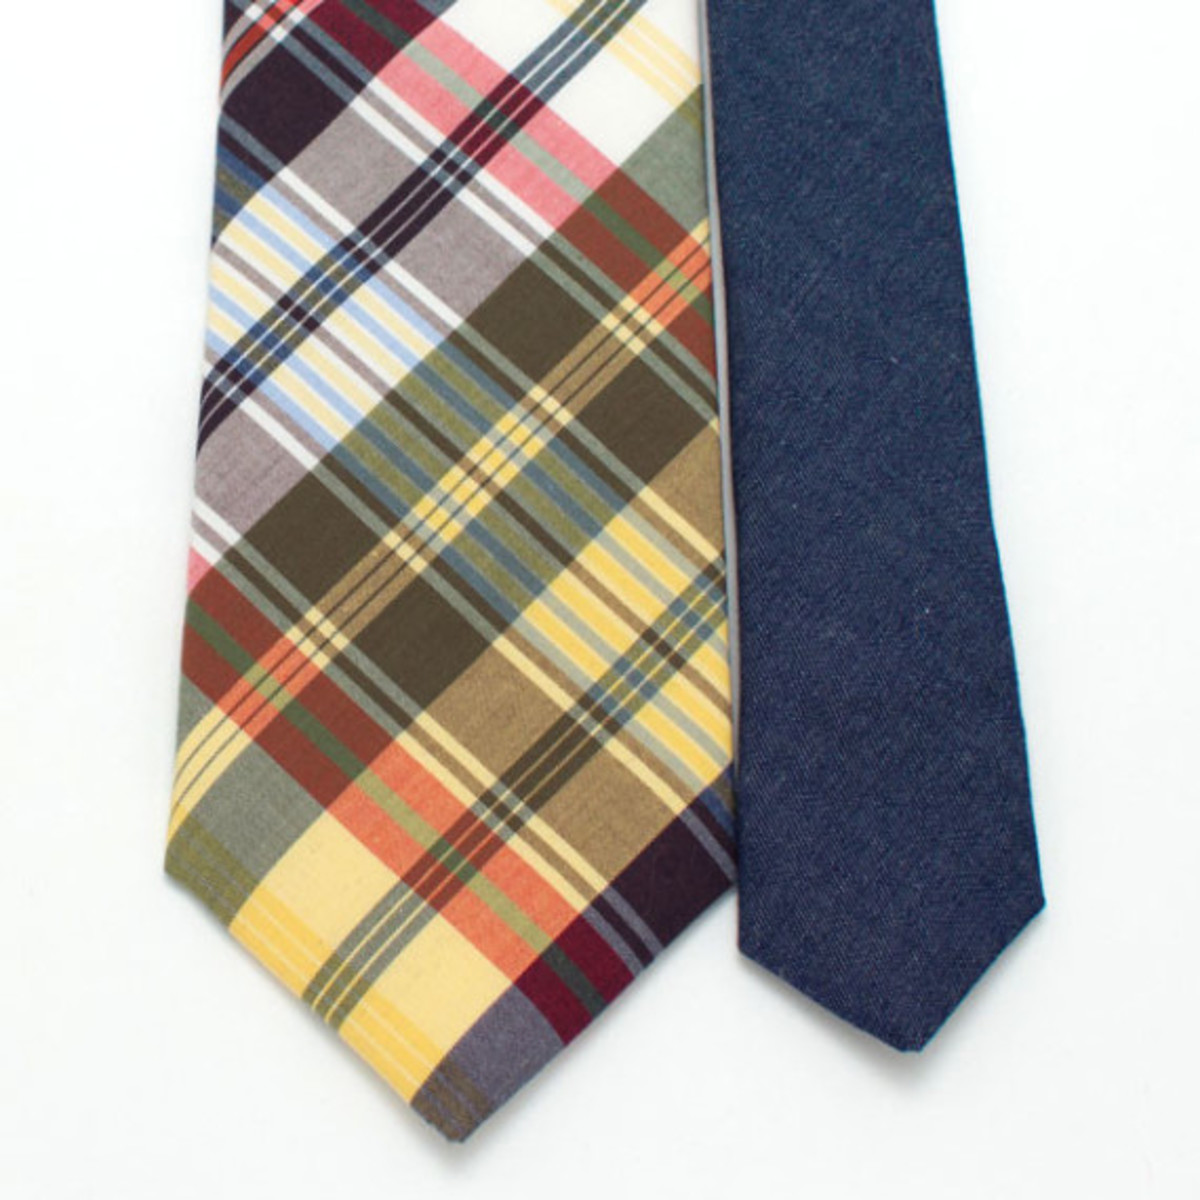 general-knot-and-co-portland-family-neckwear-collection-05